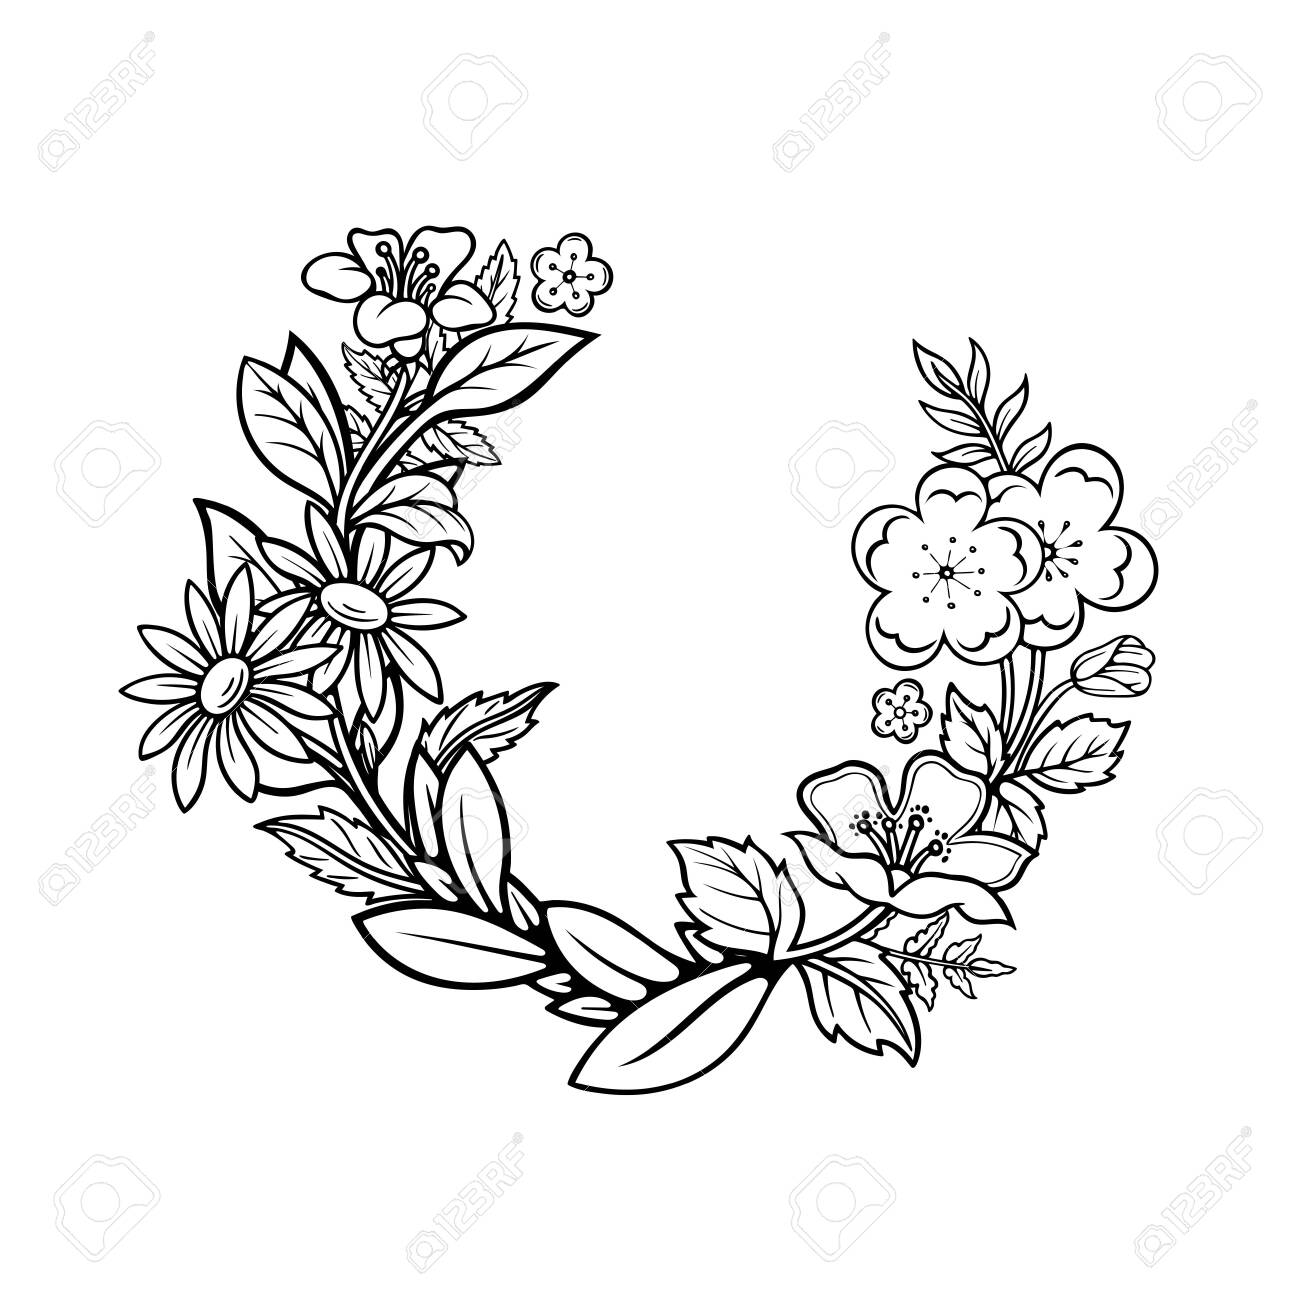 Floral wreath. Hand drawn different flowers and plants wreath vector illustration. Sketched floral frame. Part of set. - 151493956